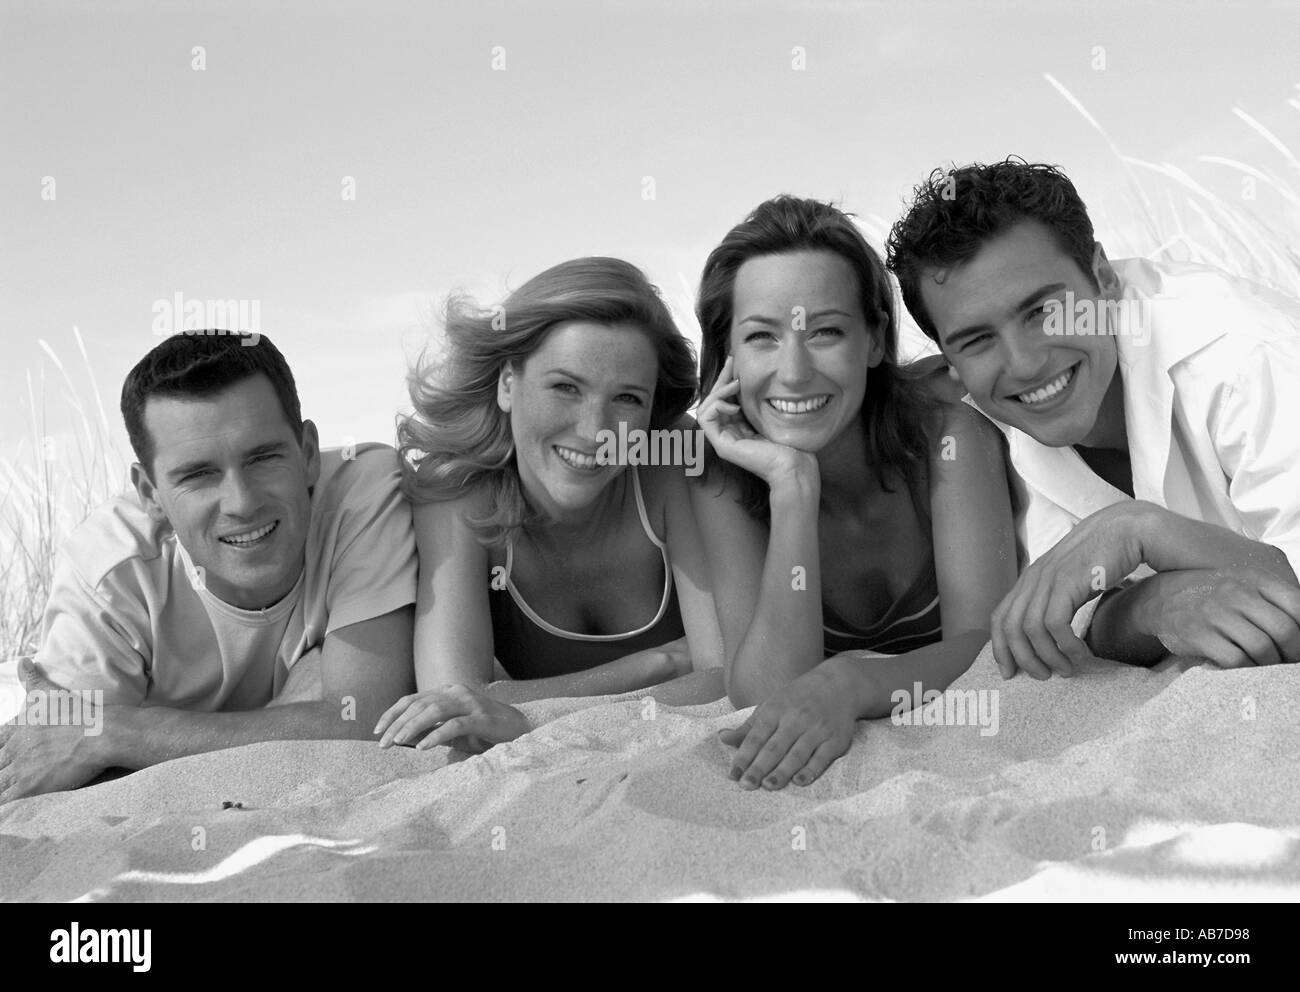 Friends on the beach - Stock Image